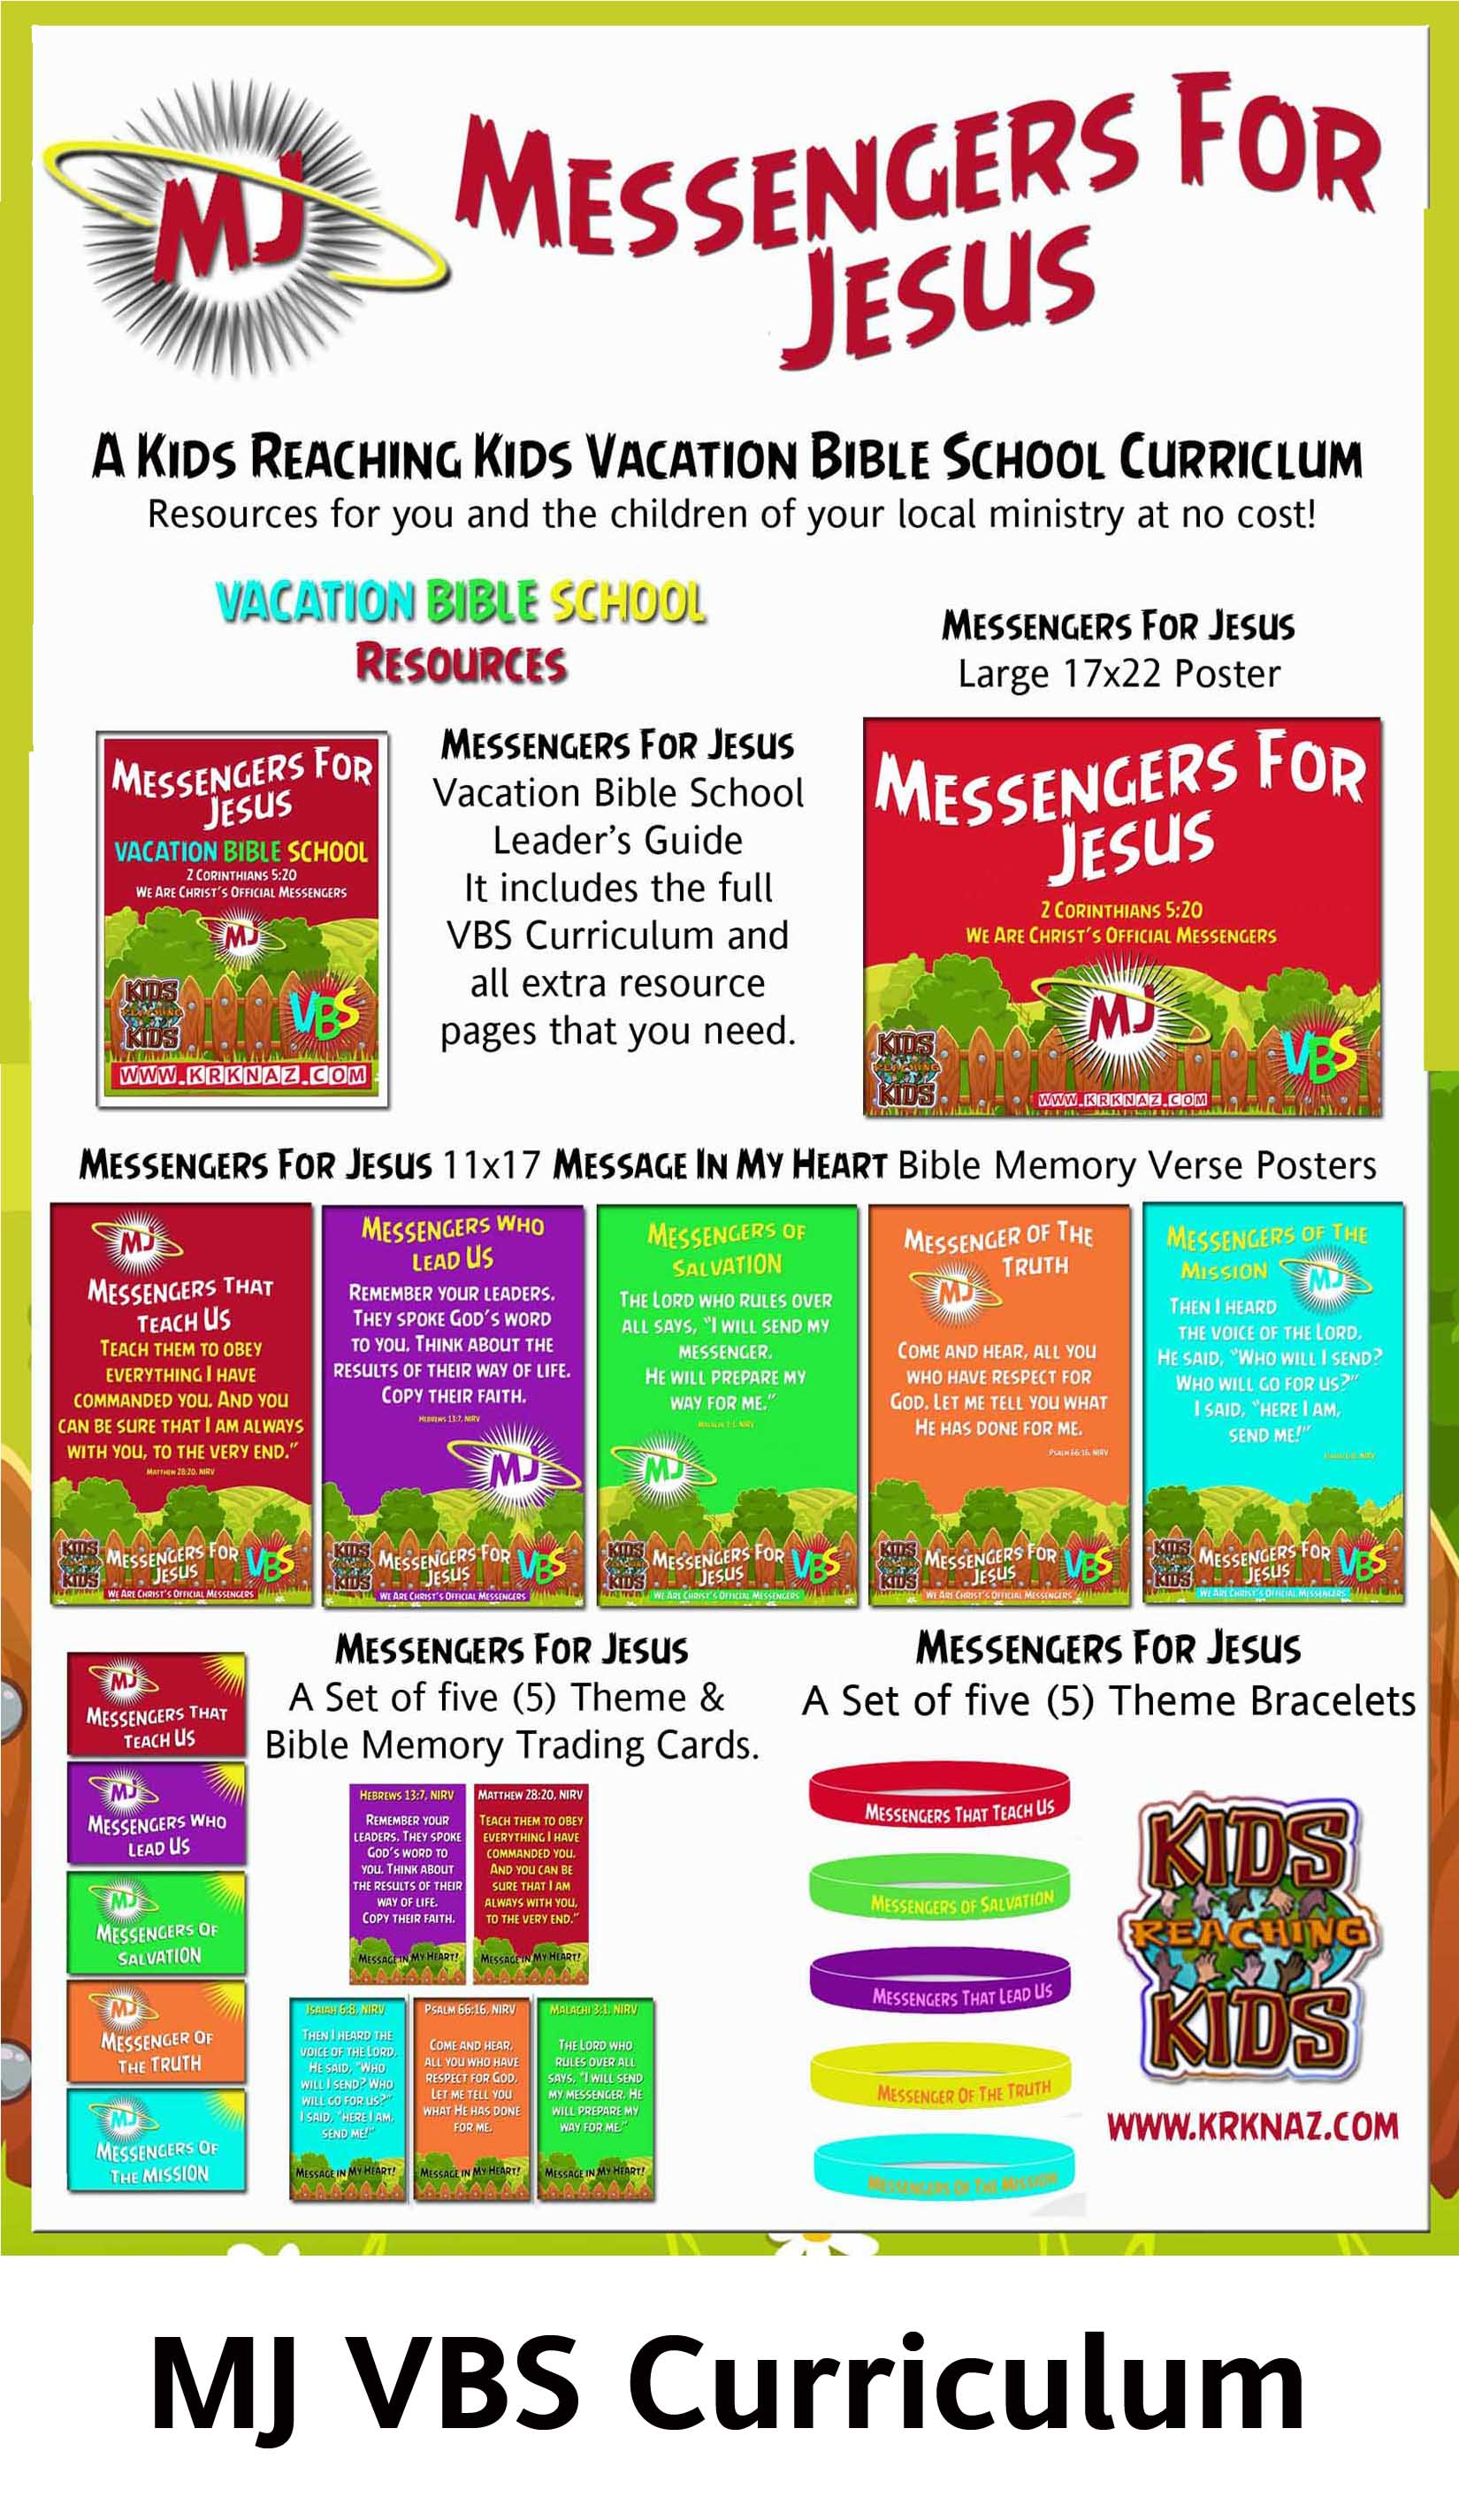 MJ VBS Curriculum with Title